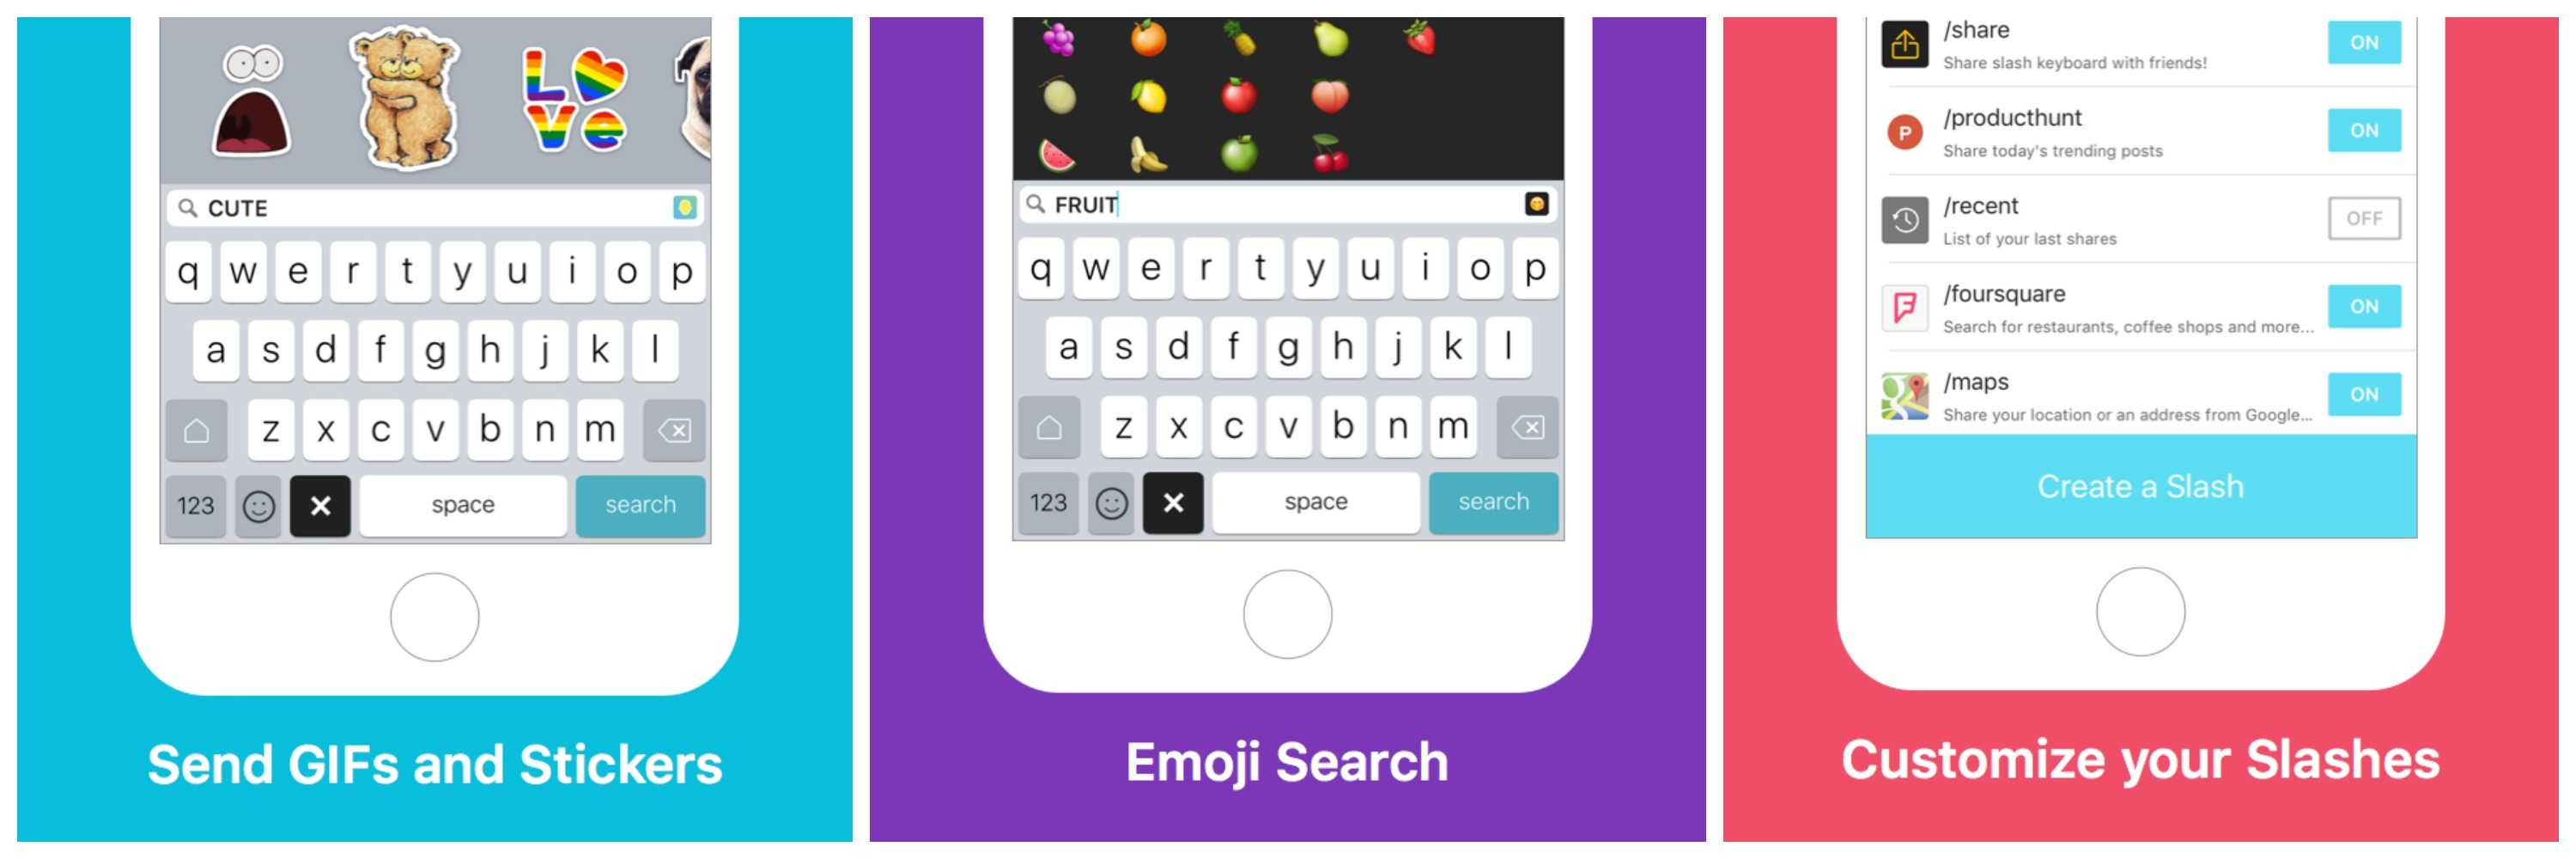 Slash Keyboard makes it easy to add GIFs, emojis and just about anything else to your messages.